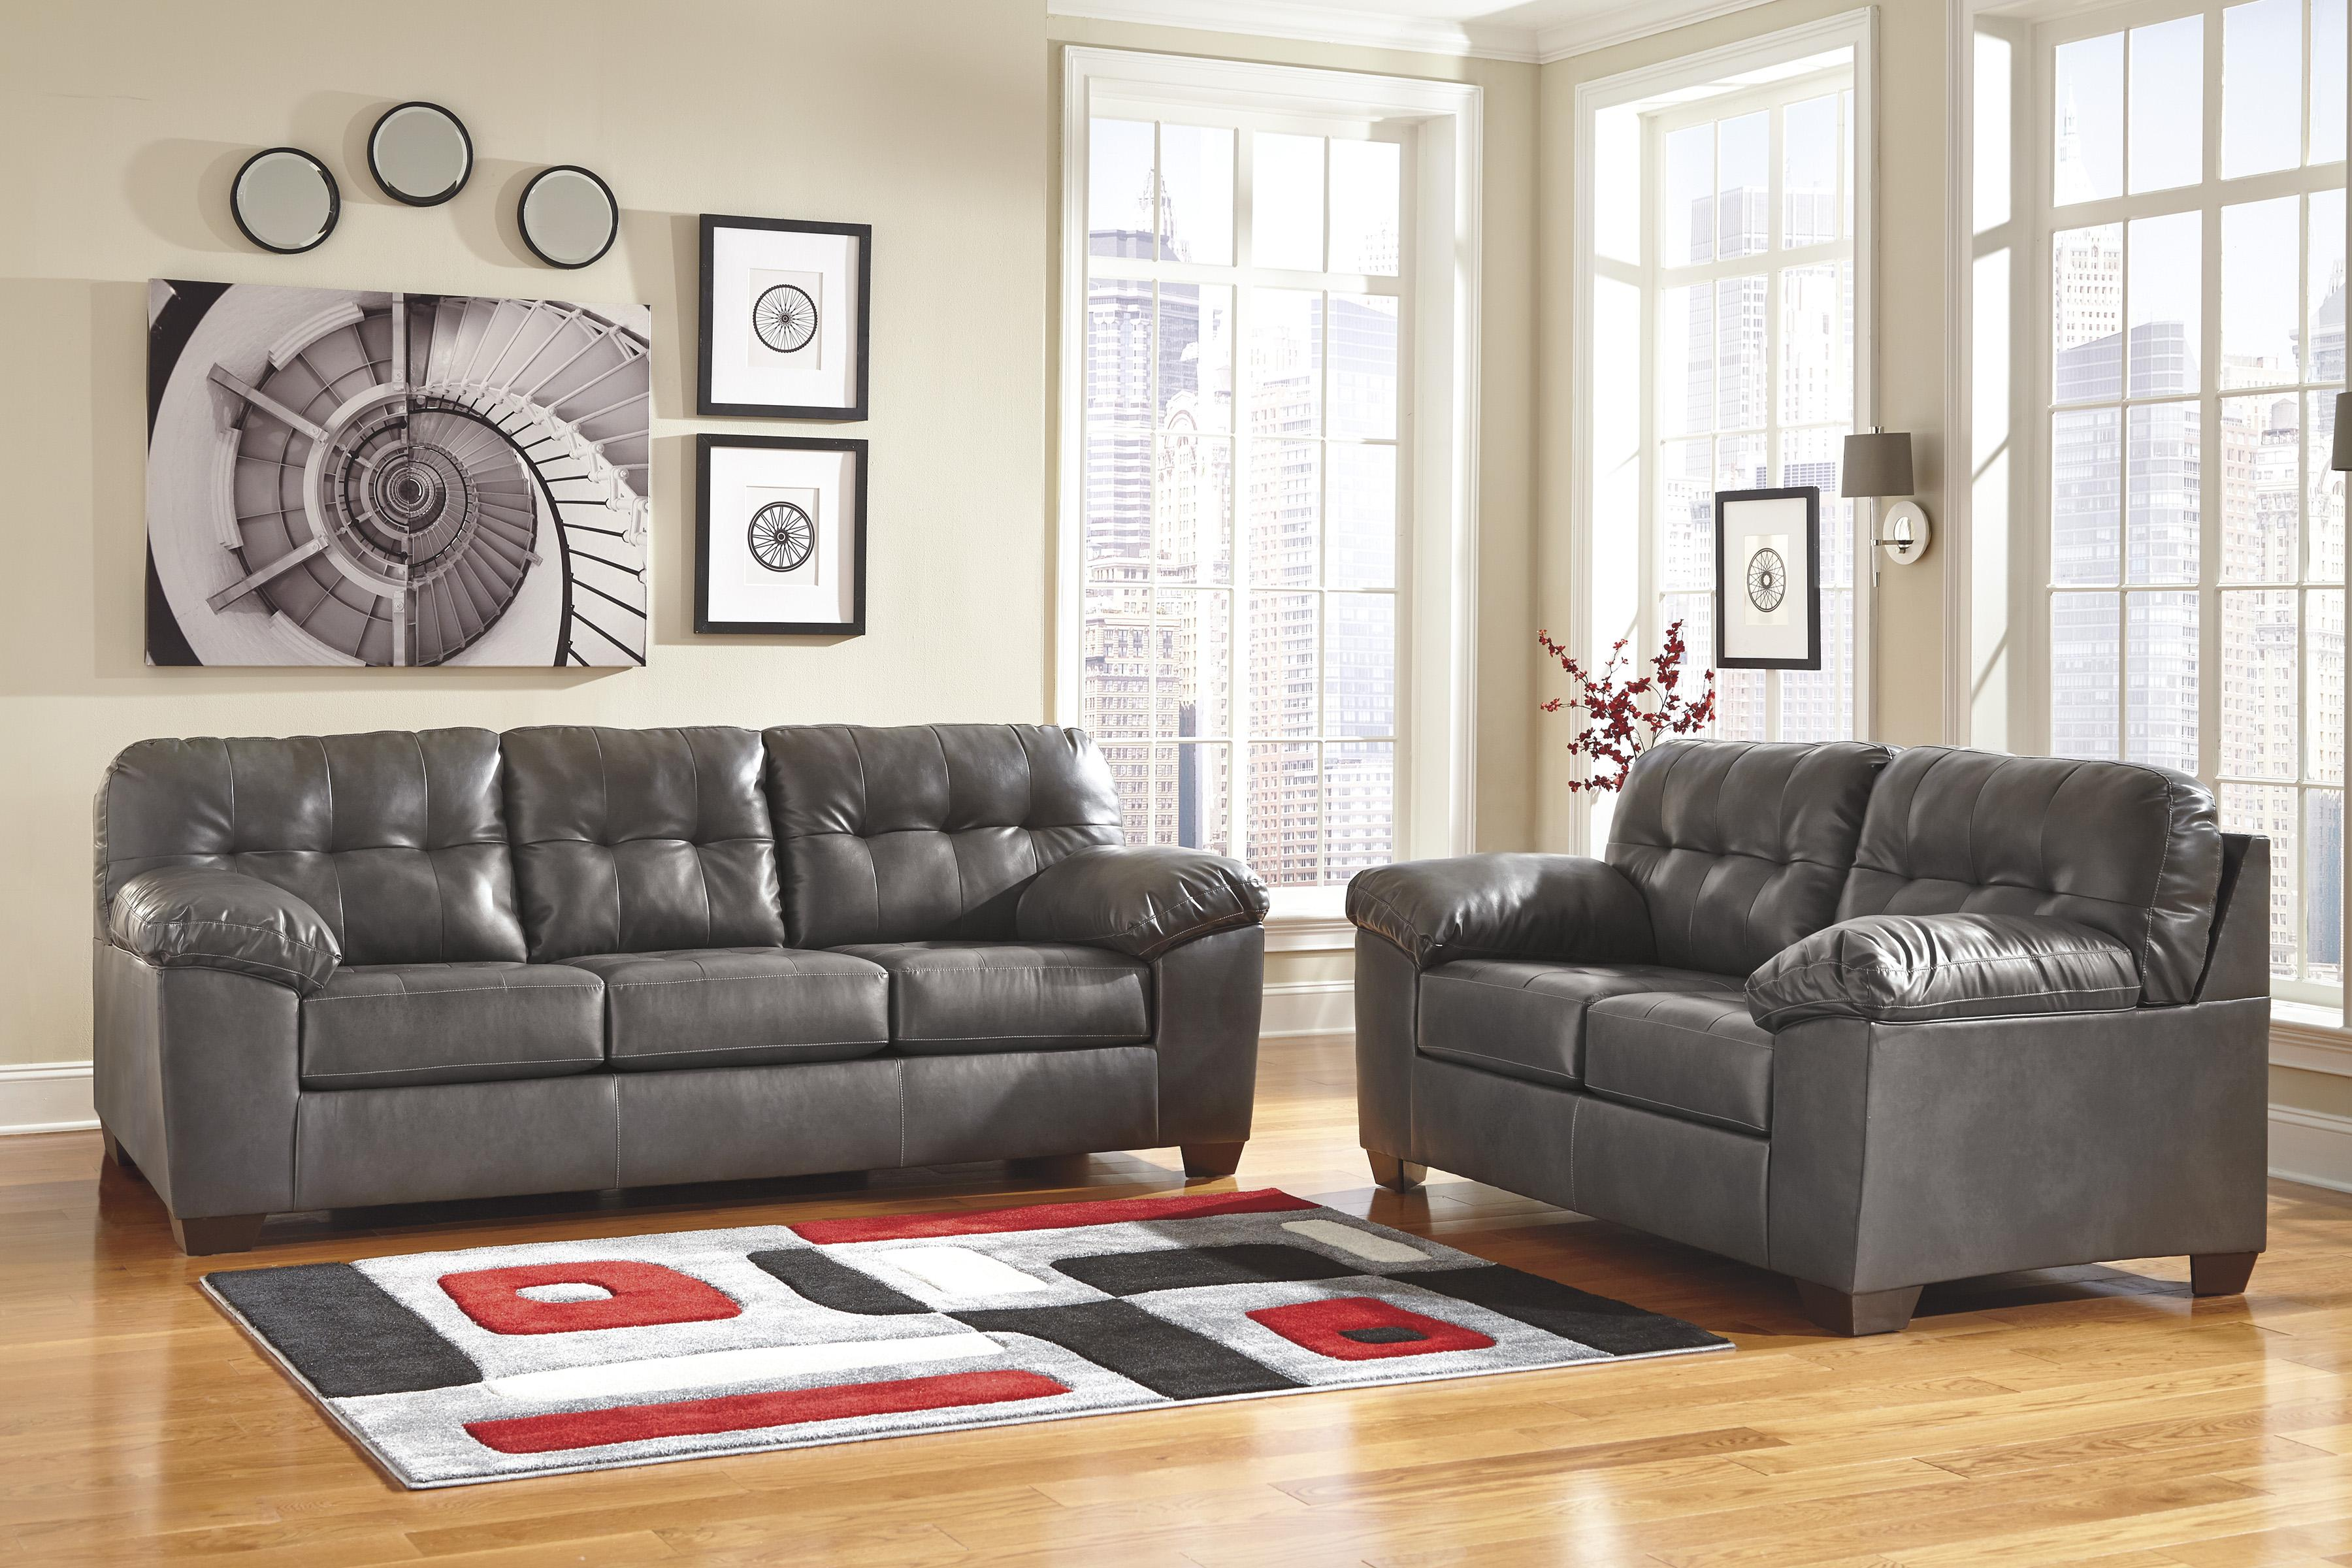 dark gray leather living room furniture wallpaper signature design by ashley alliston durablend stationary group